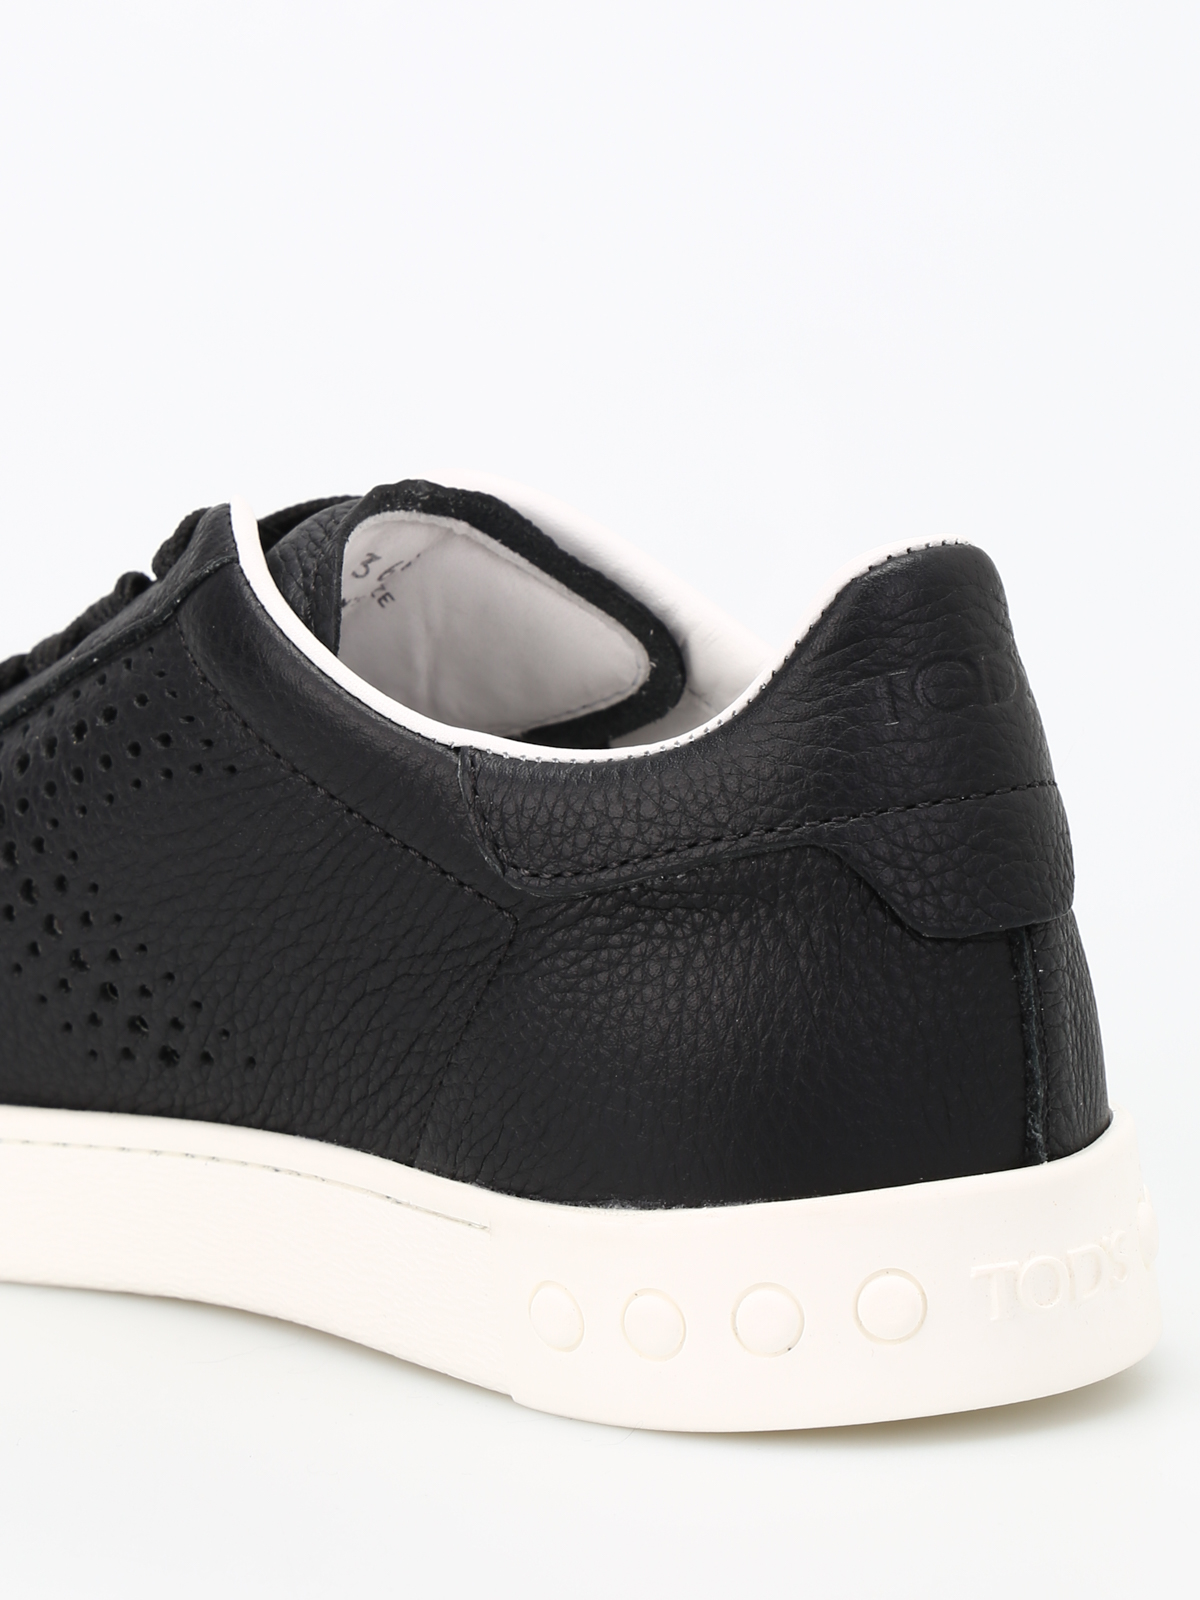 Tod's Drilled T Leather Sneakers Clearance Very Cheap Discount Nicekicks Outlet Visit New XY4RhREQ6O